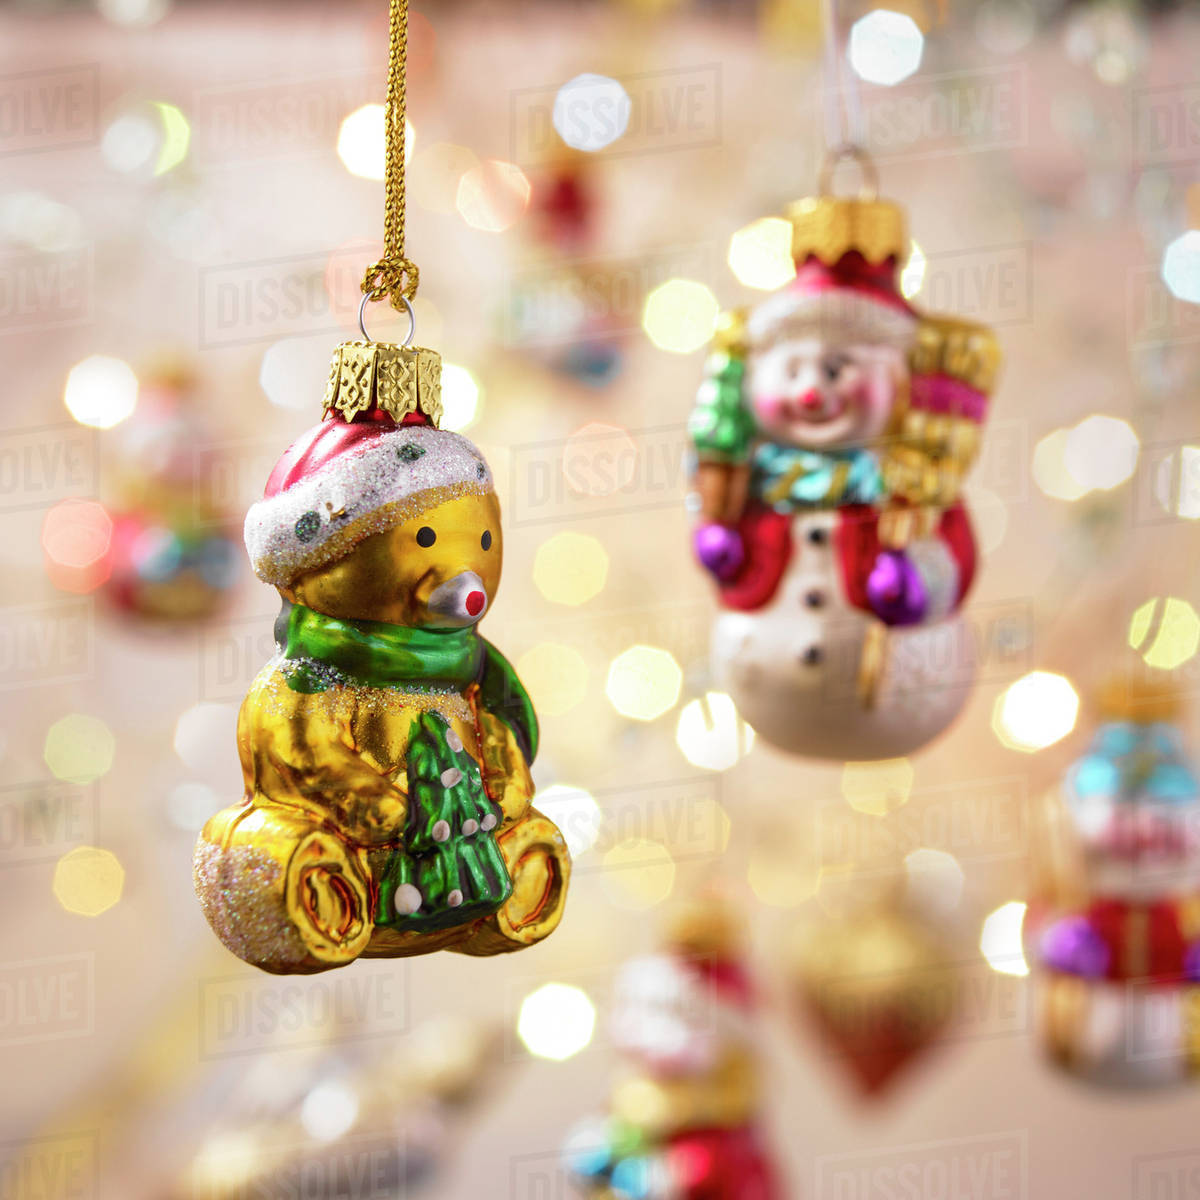 Hanging yellow teddy bear Christmas ornament with out of focus ornaments in the background; Victoria, British Columbia, Canada